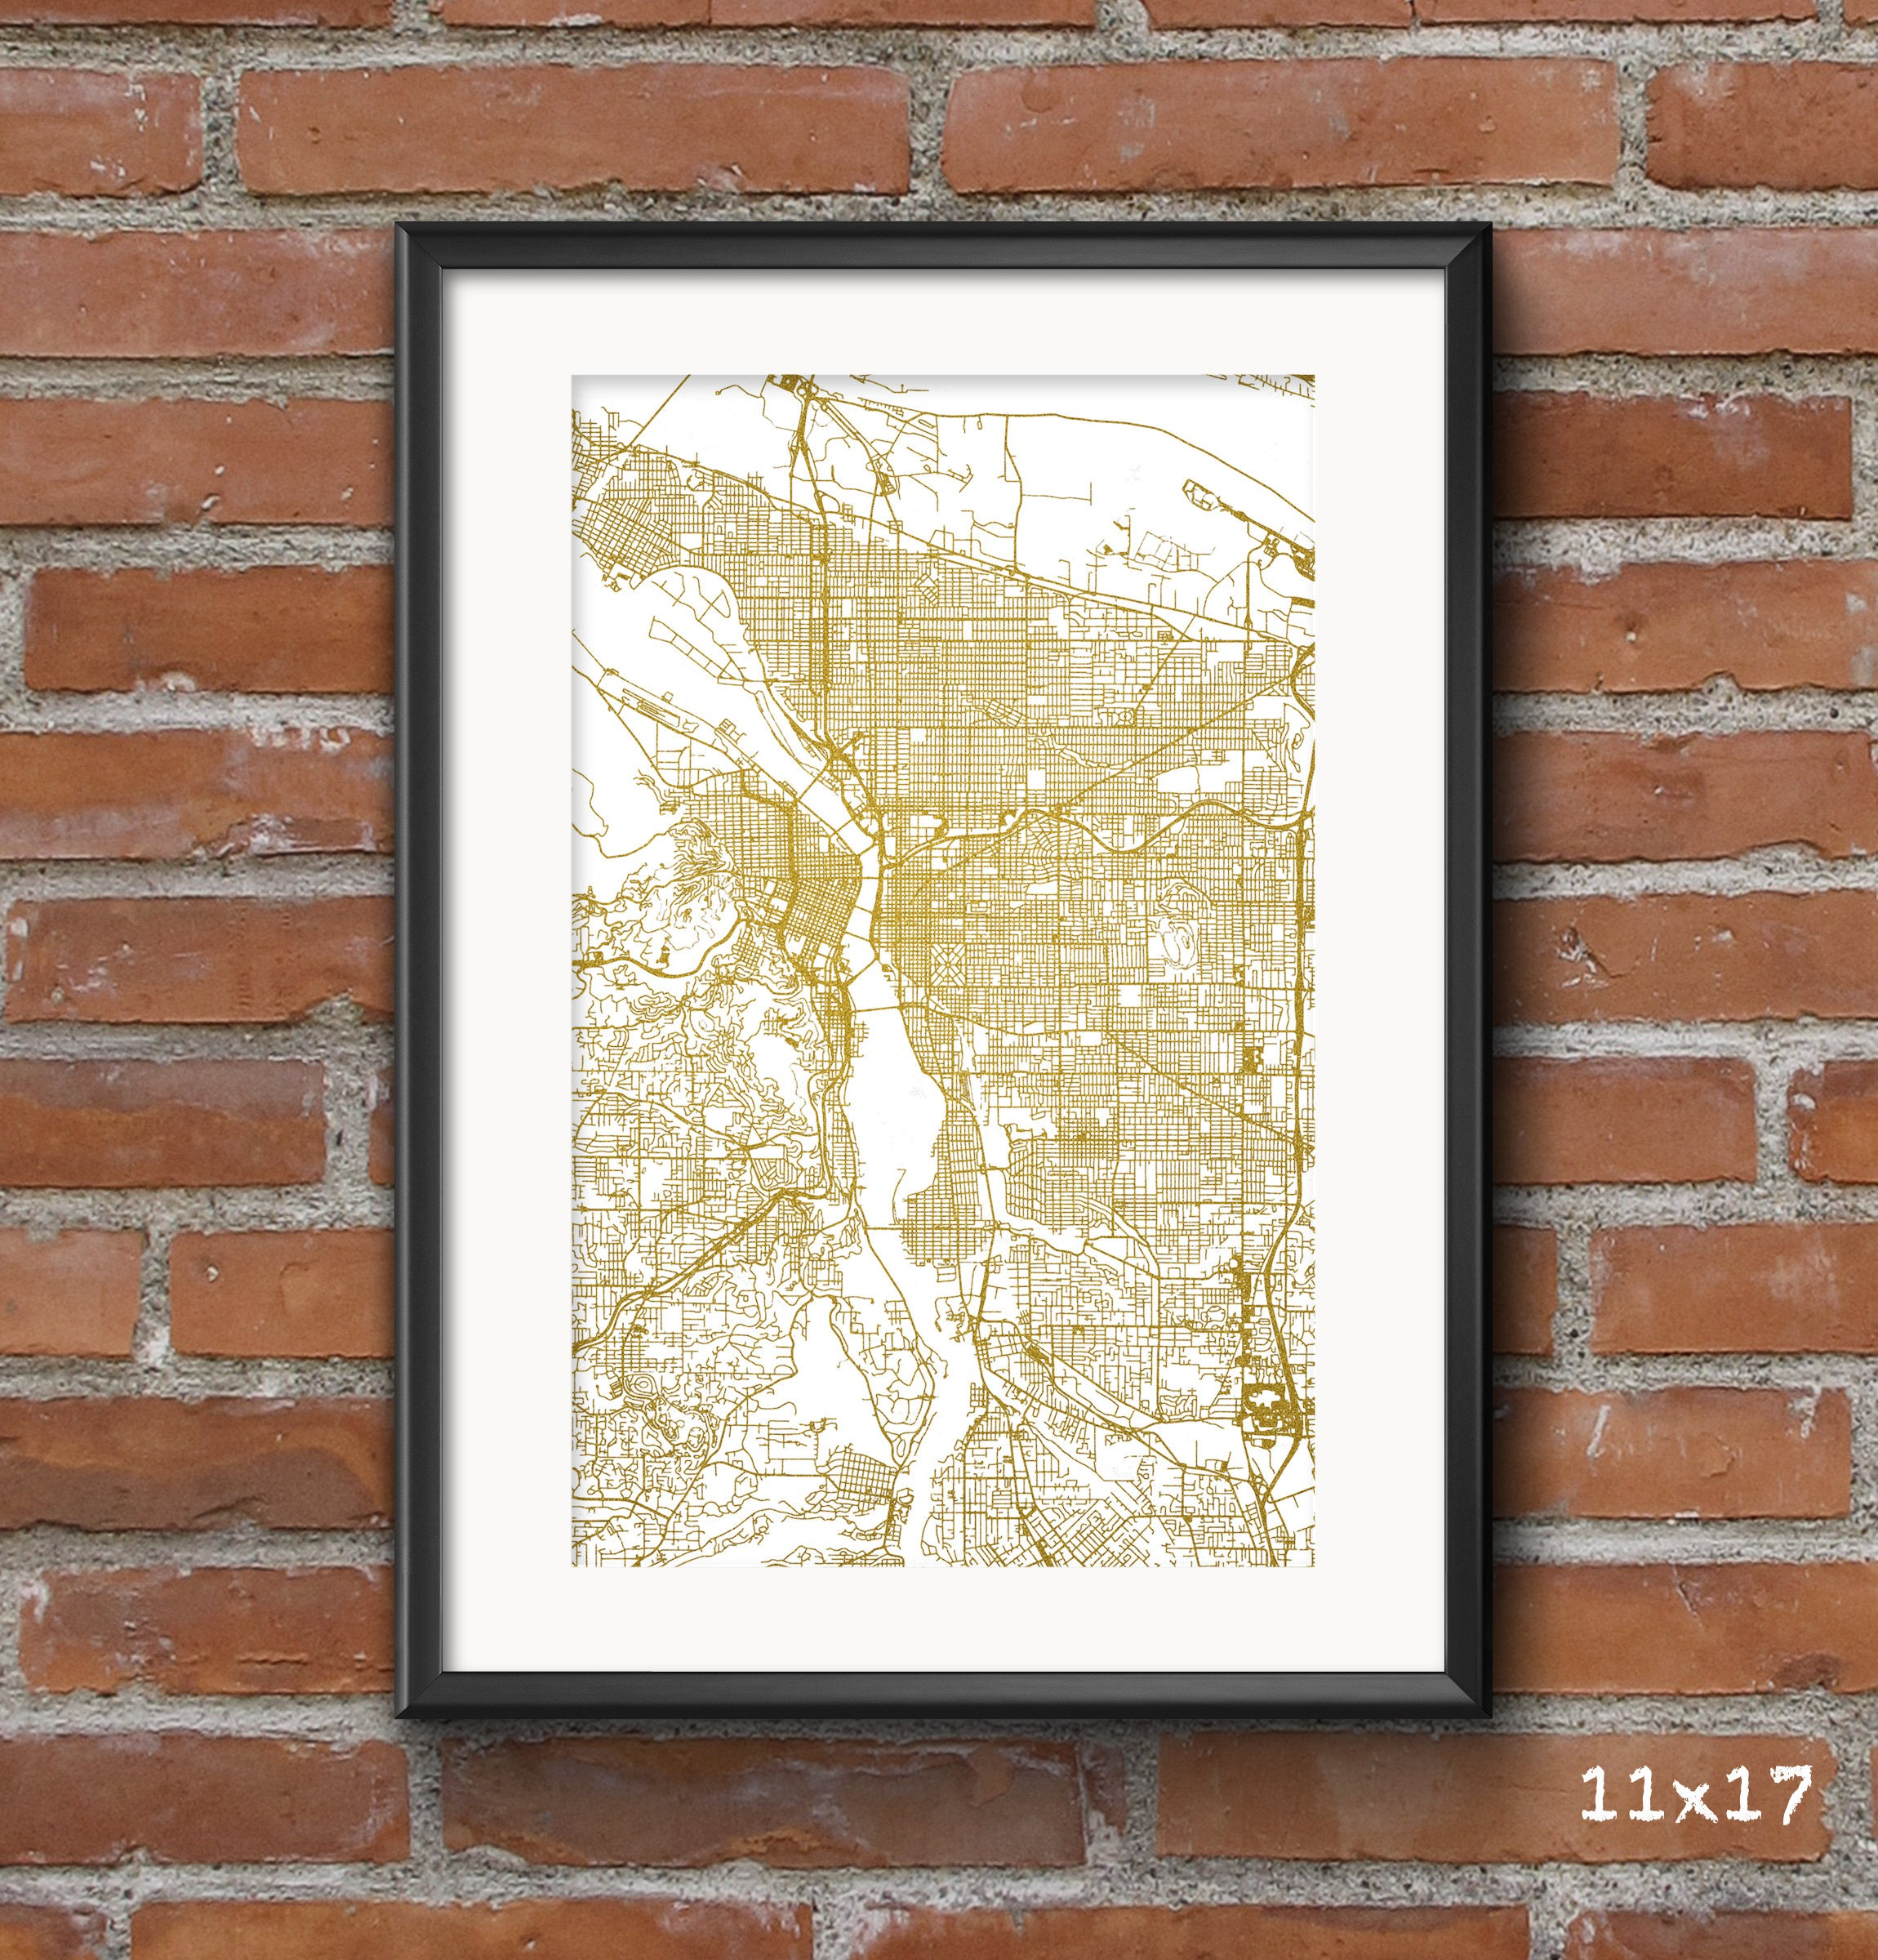 Stunning Portland Wall Art Photos - The Wall Art Decorations ...